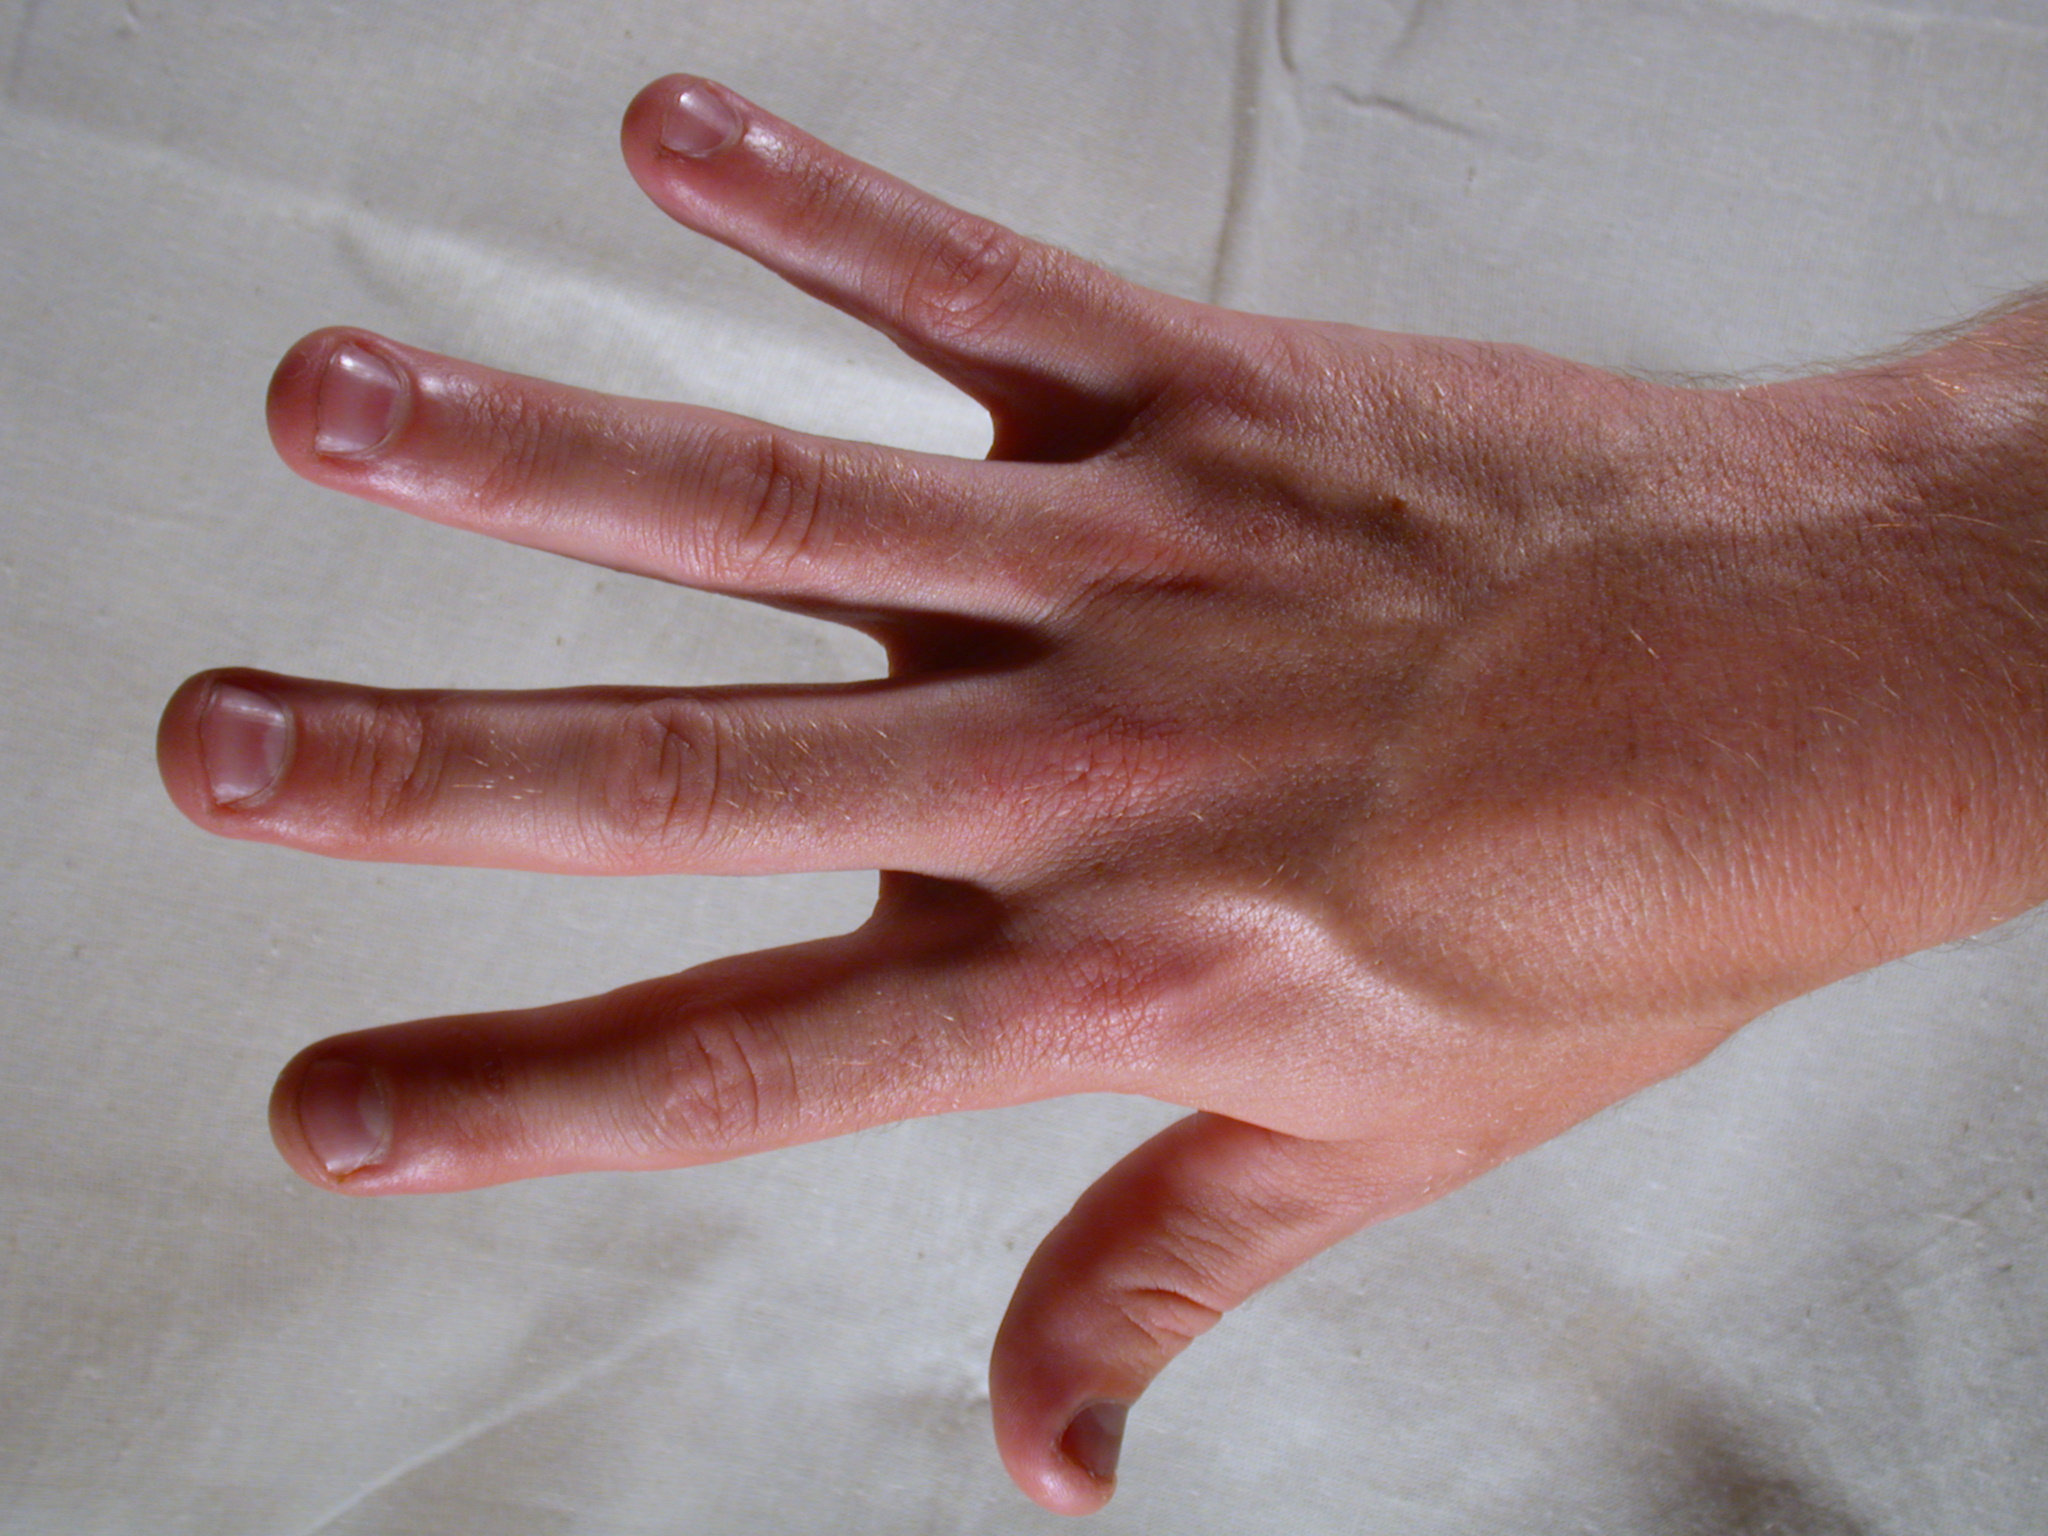 nature characters humanparts male texture reference bodykit1 lefthand top hand finger fingers nail nails fingernail fingernails skin hair hairy pink